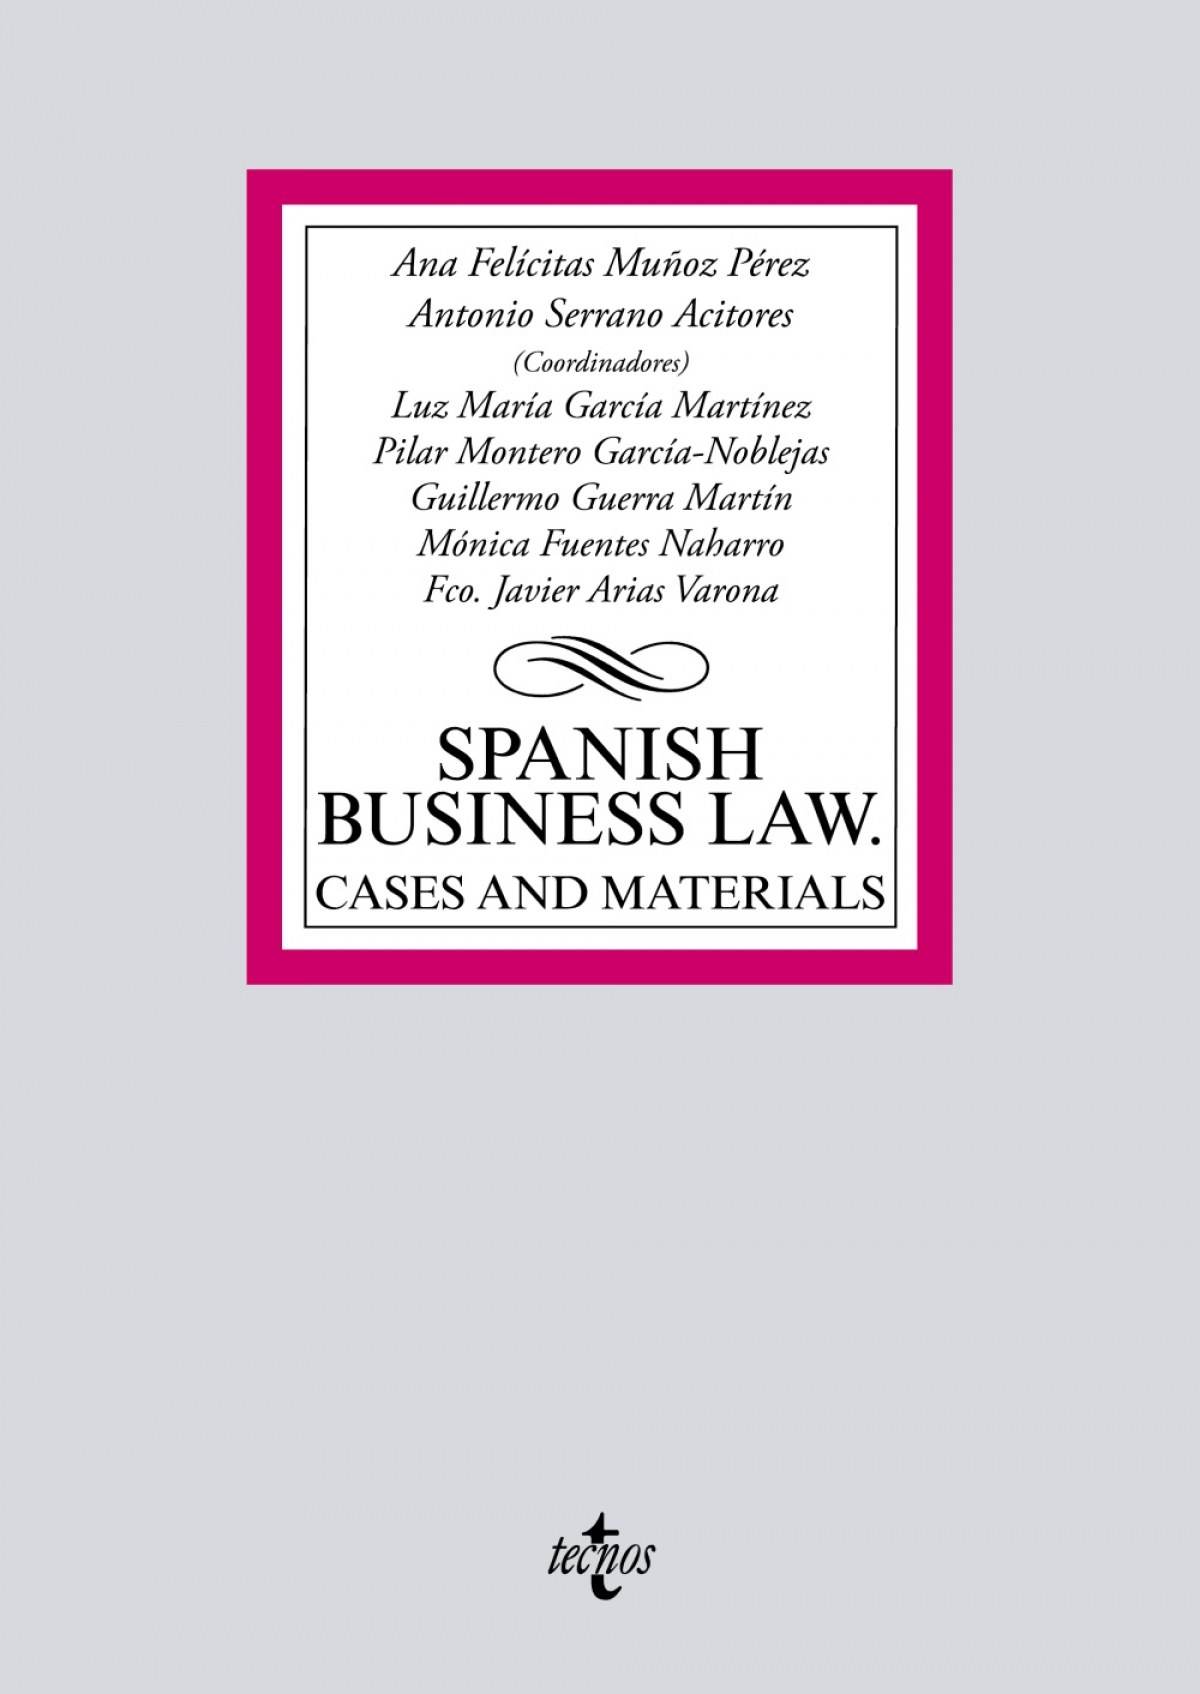 Spanish Business Law: cases and materials